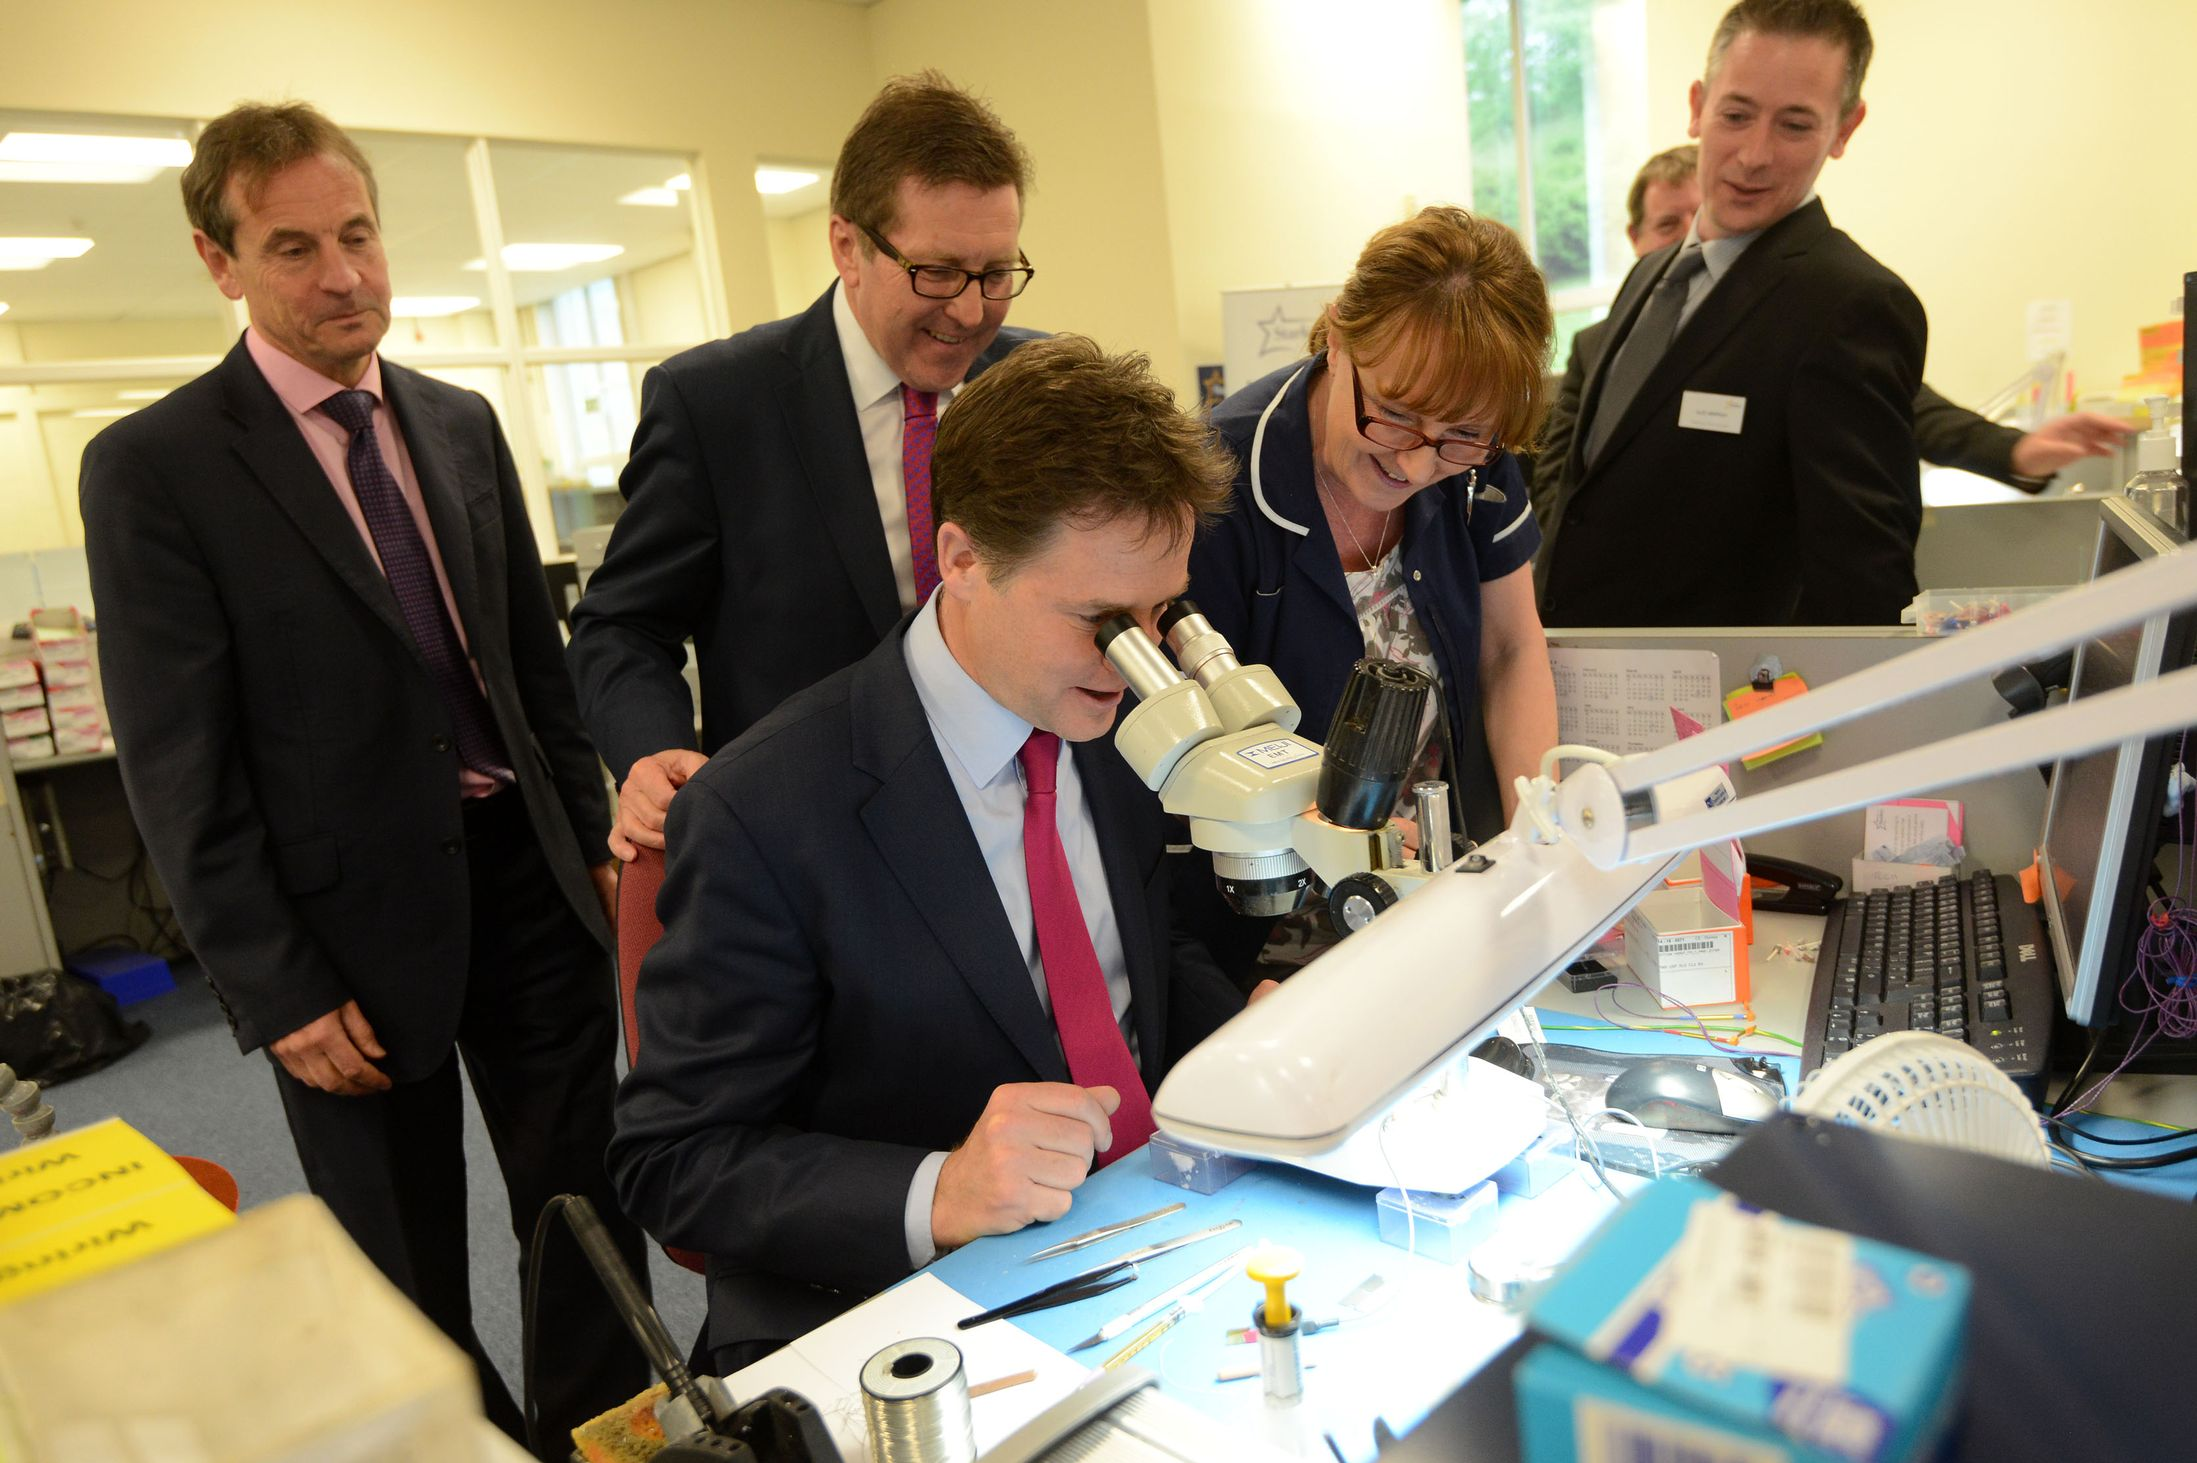 Deputy PM Nick Clegg puts his faith in Stockport